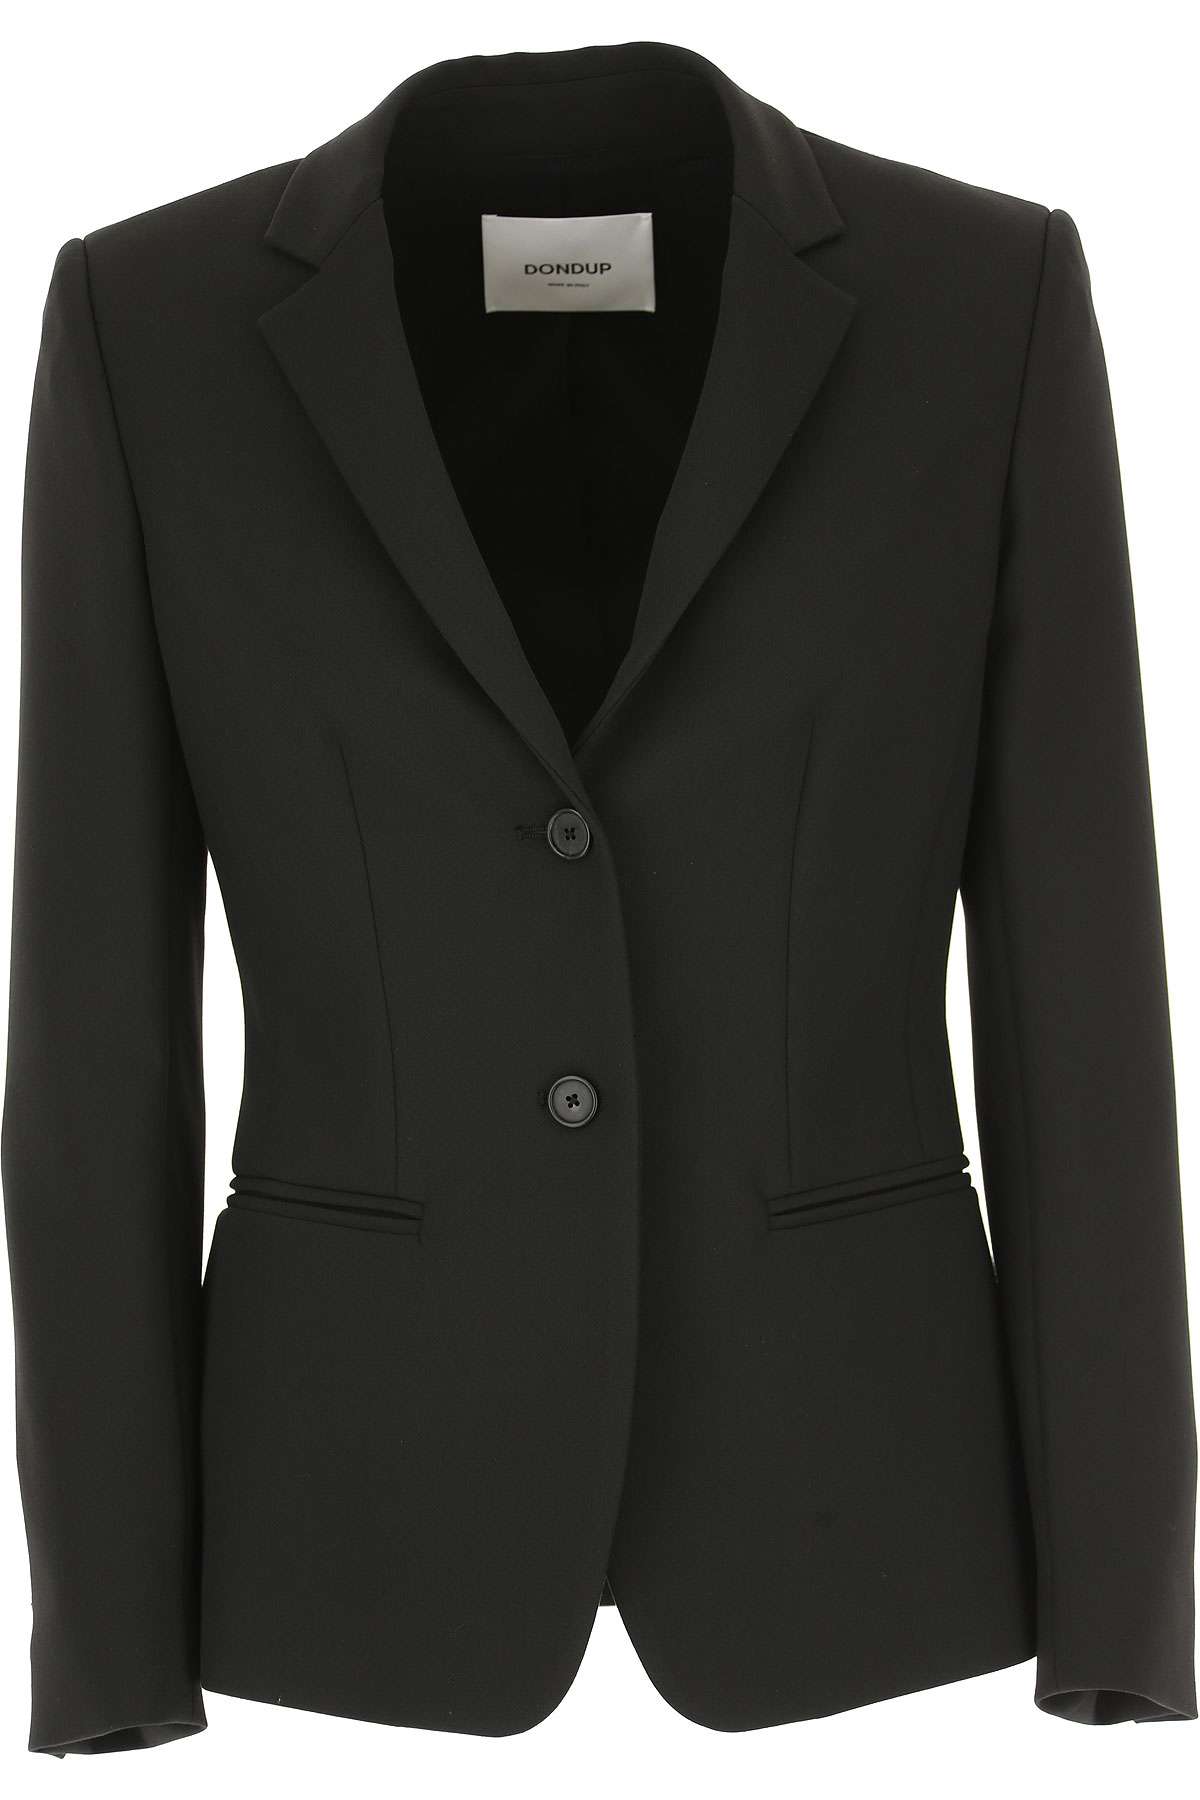 Dondup Jacket for Women On Sale, Black, polyester, 2019, 2 4 6 8